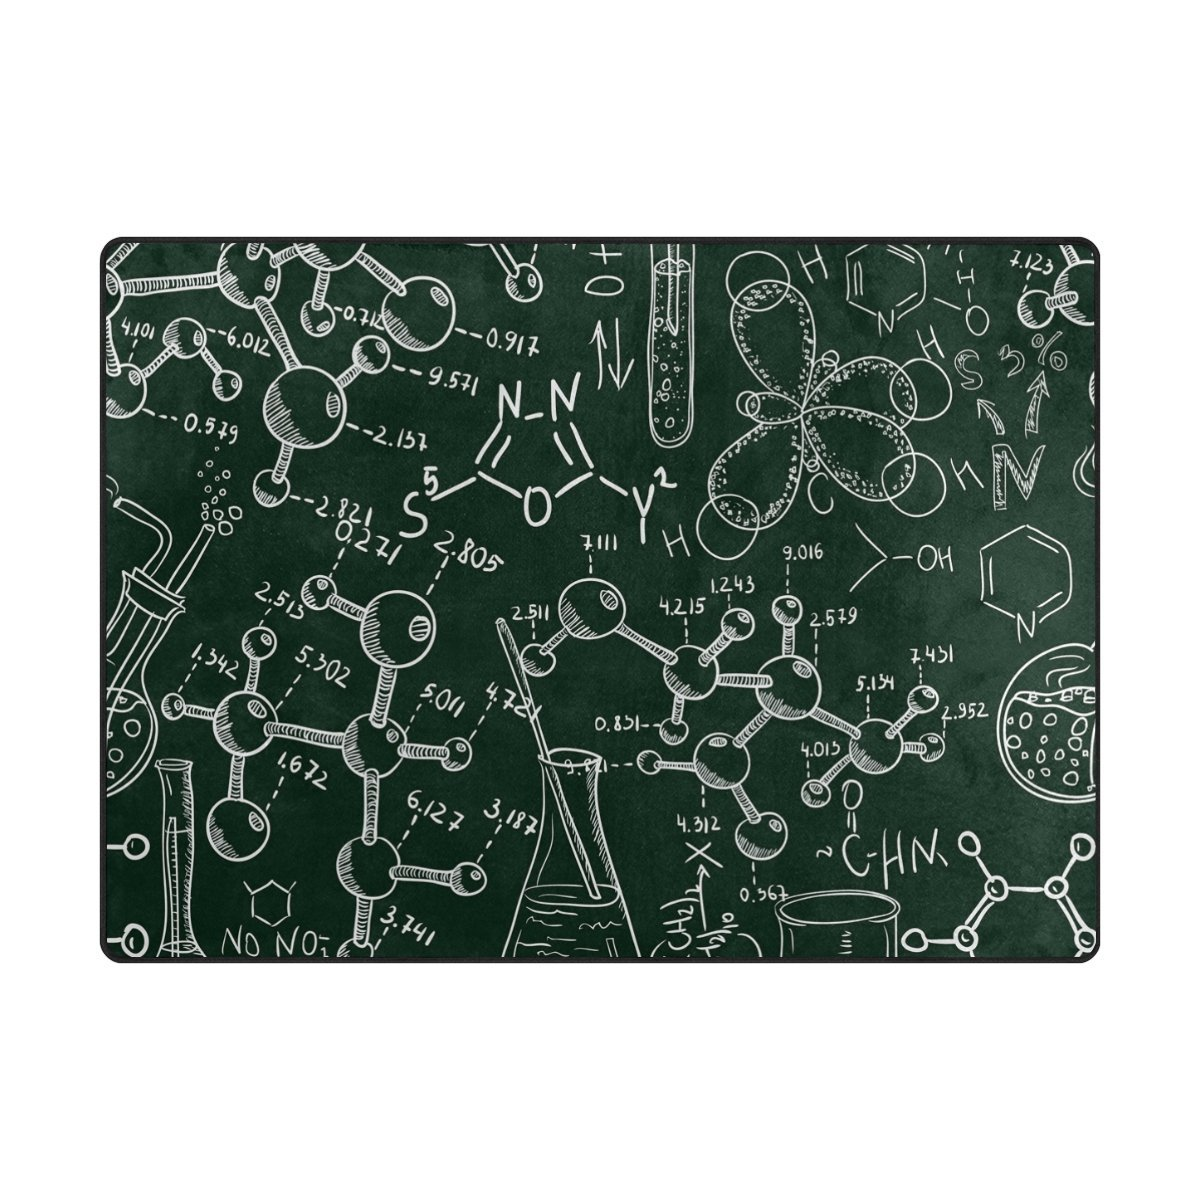 Vantaso Soft Foam Area Rugs Science Chemistry Math School Non Slip Play Mats 80x58 inch for Kids Playing Living Room